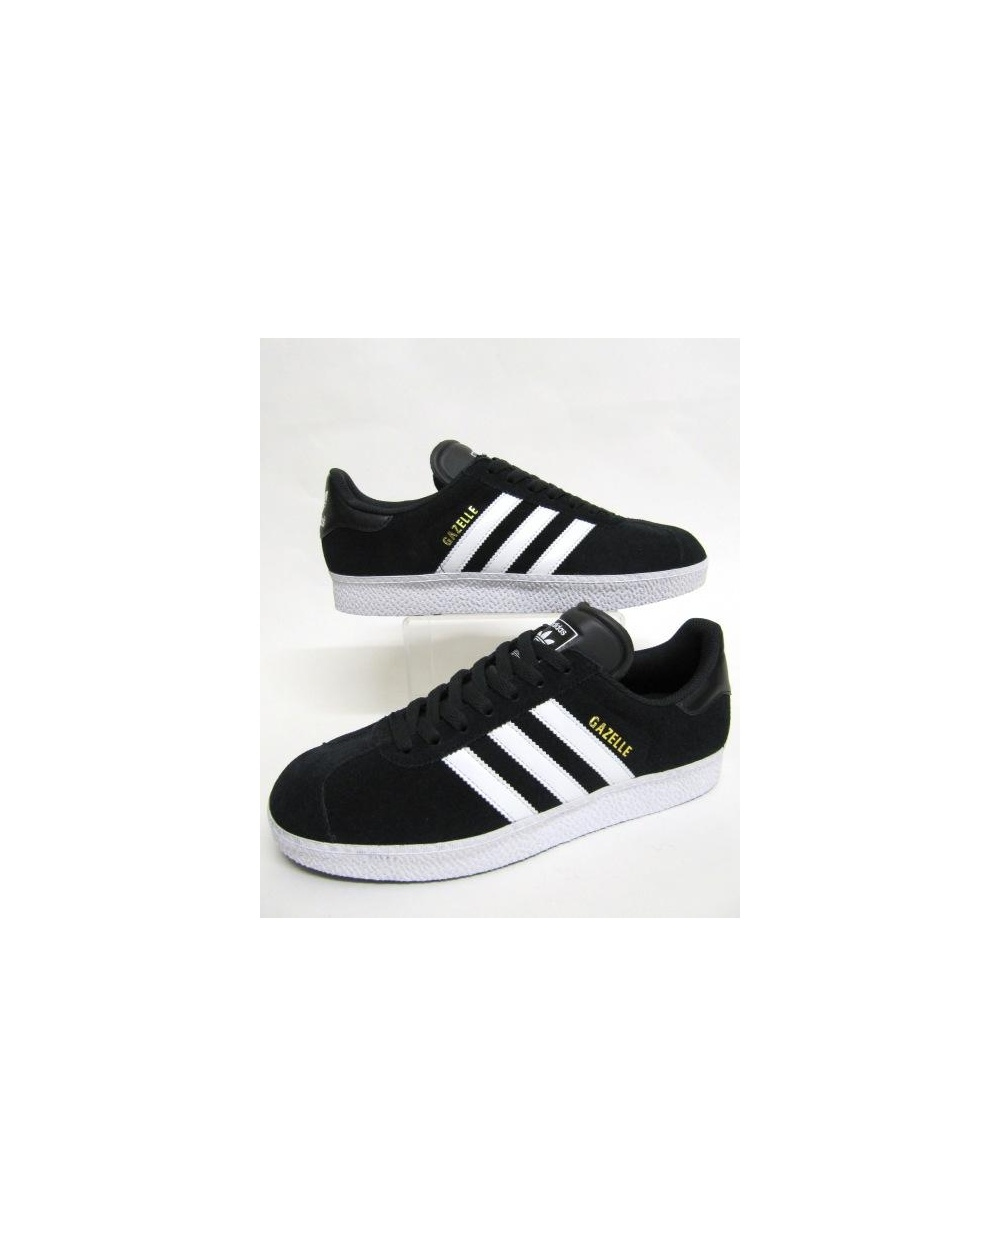 Adidas Originals Gazelle 2 Trainers